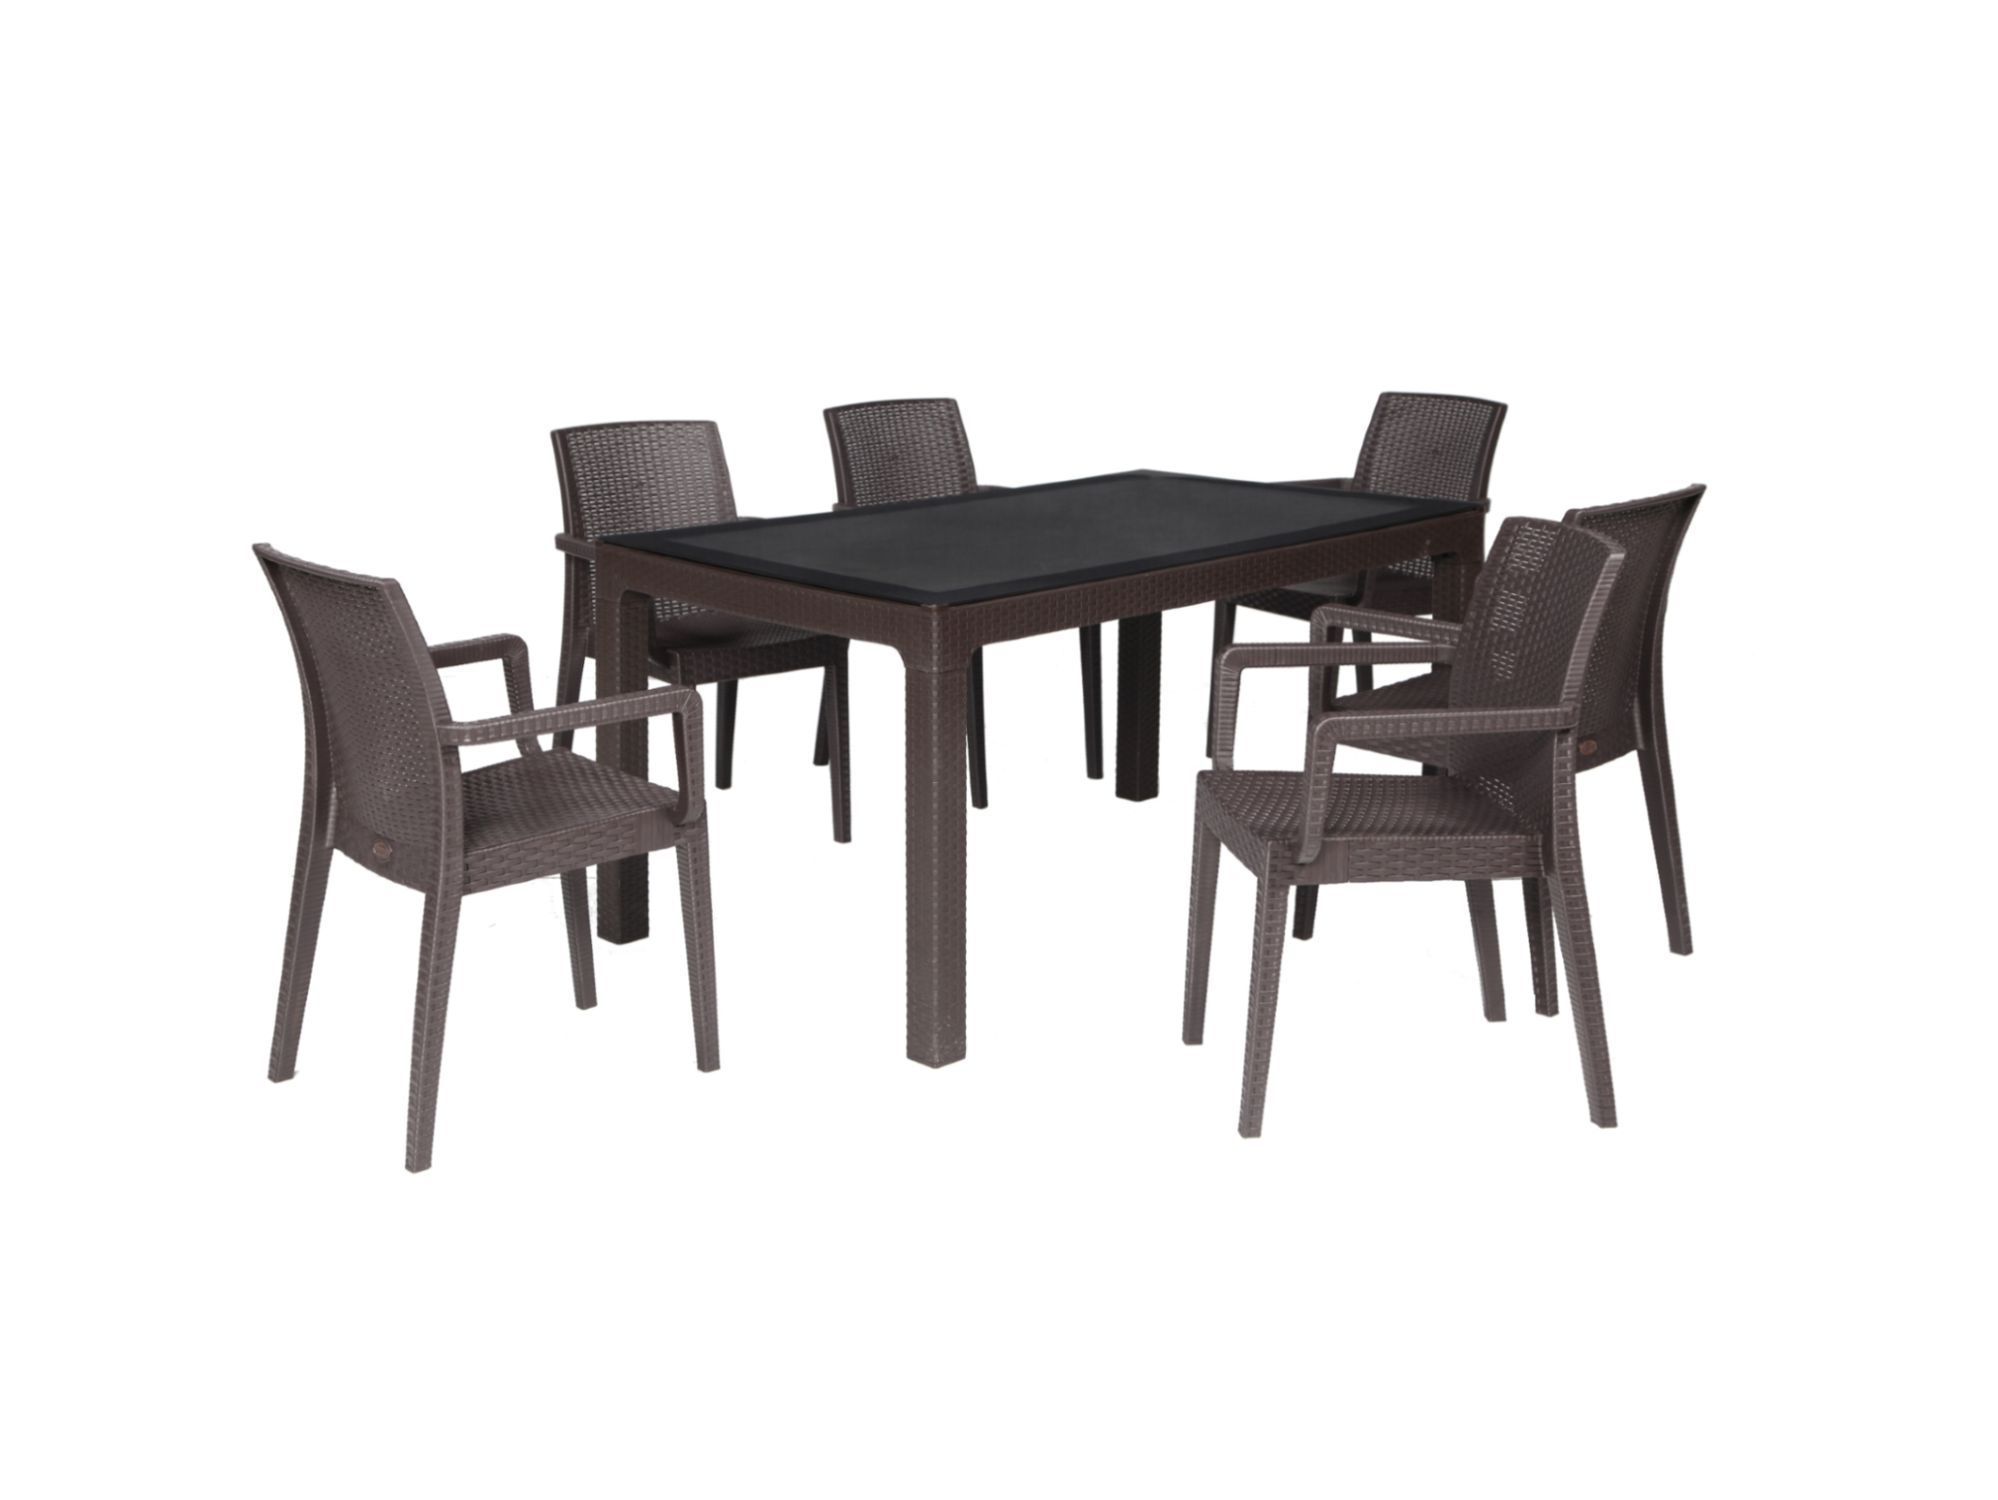 Contemporary Table And Chair Set Siena Arizona YÜcel Outdoor - Sedia Bistrot Polyrattan